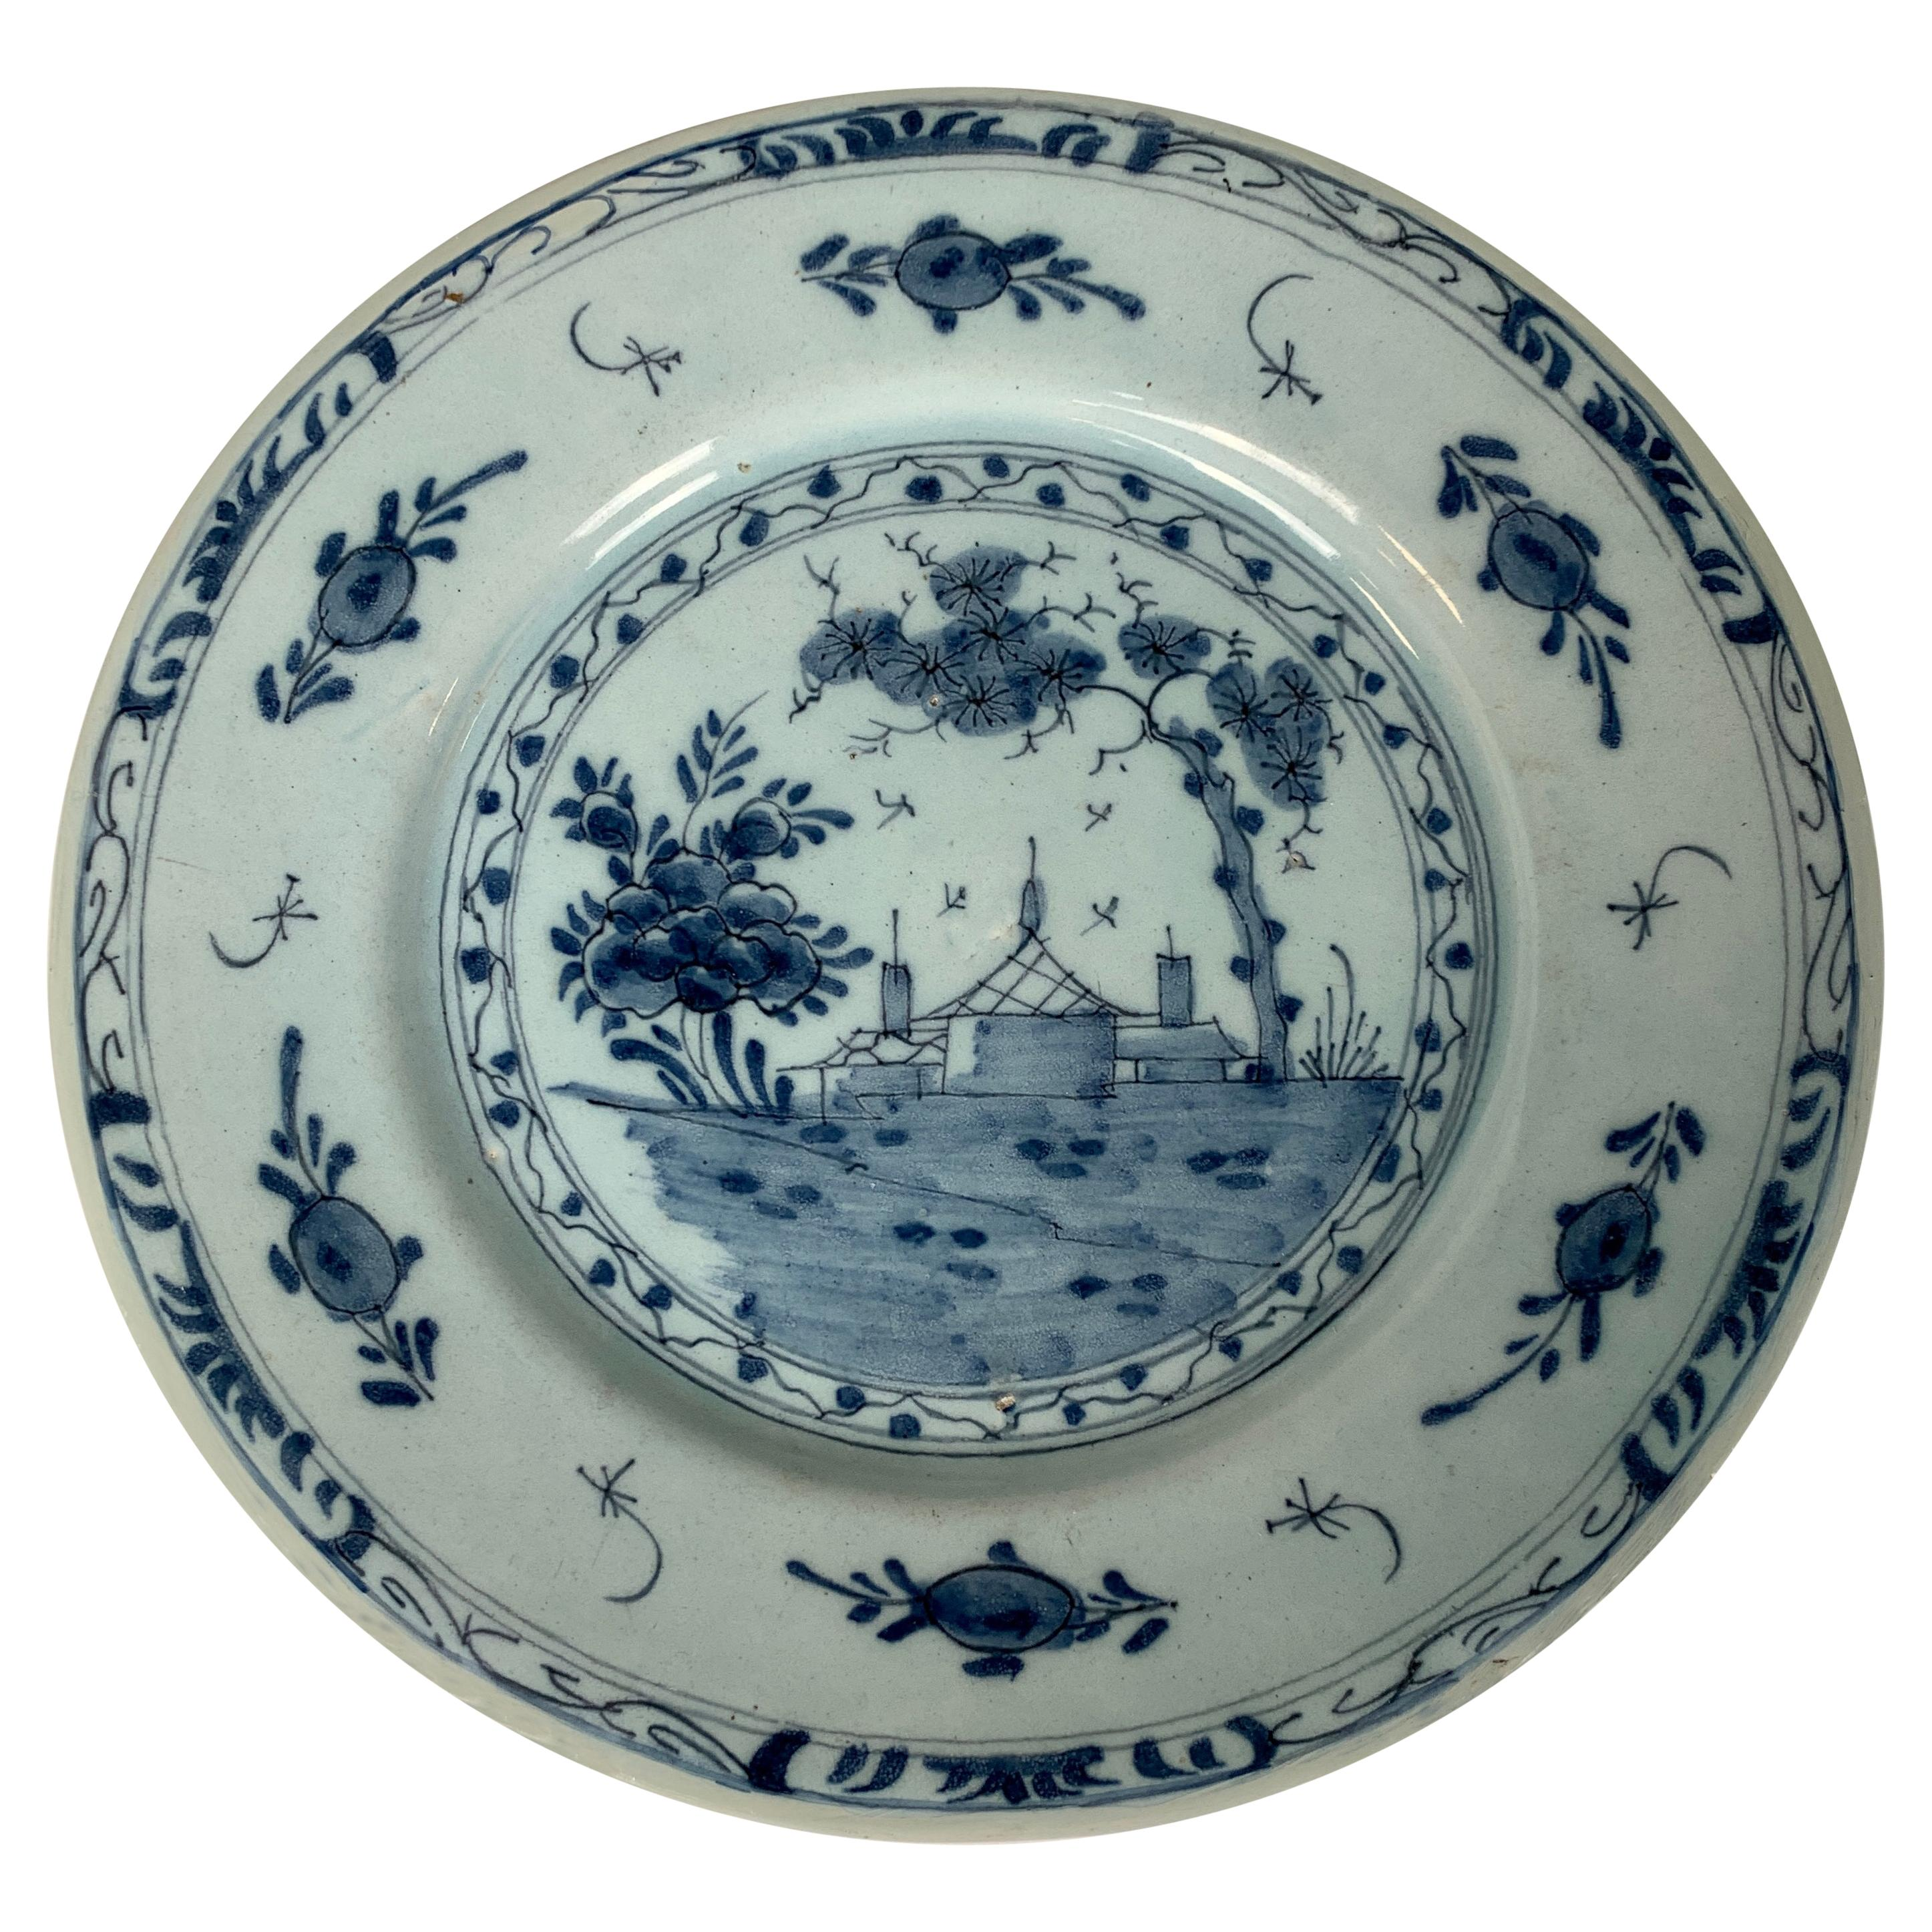 Blue and White Delft Dish Hand-Painted 18th Century, England, Circa 1760